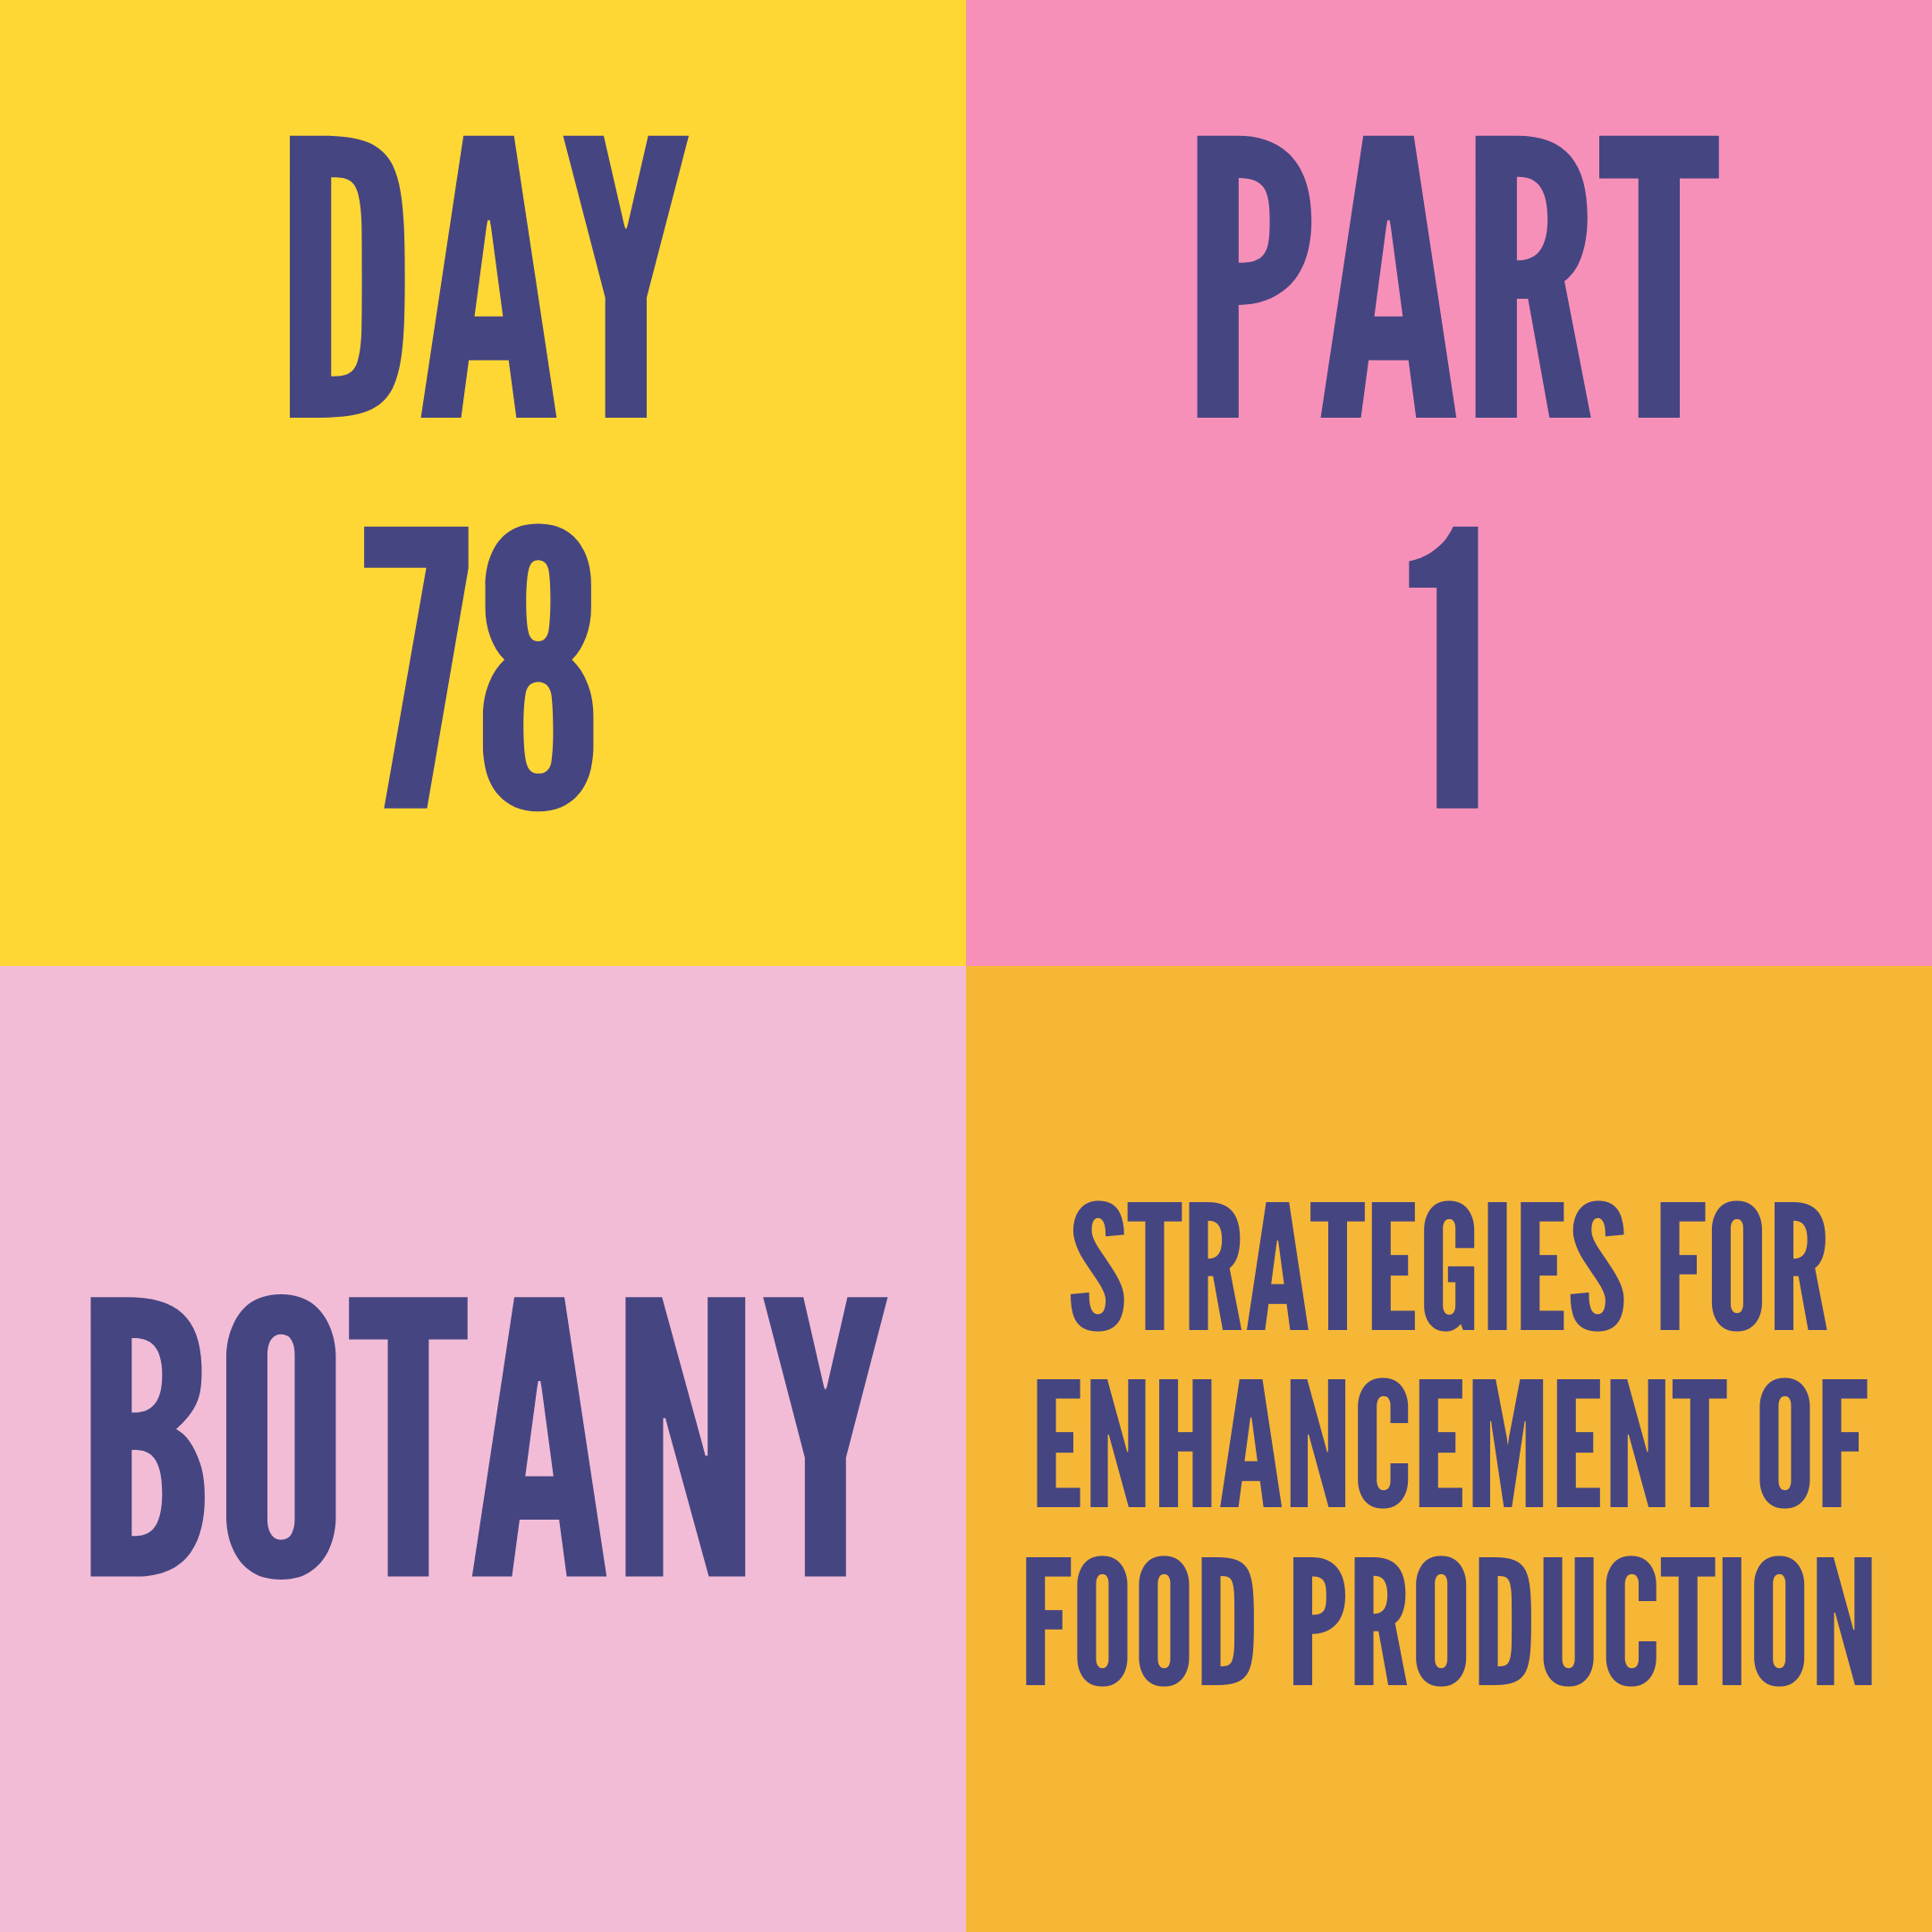 DAY-78 PART-1 STRATEGIES FOR ENHANCEMENT OF FOOD PRODUCTION